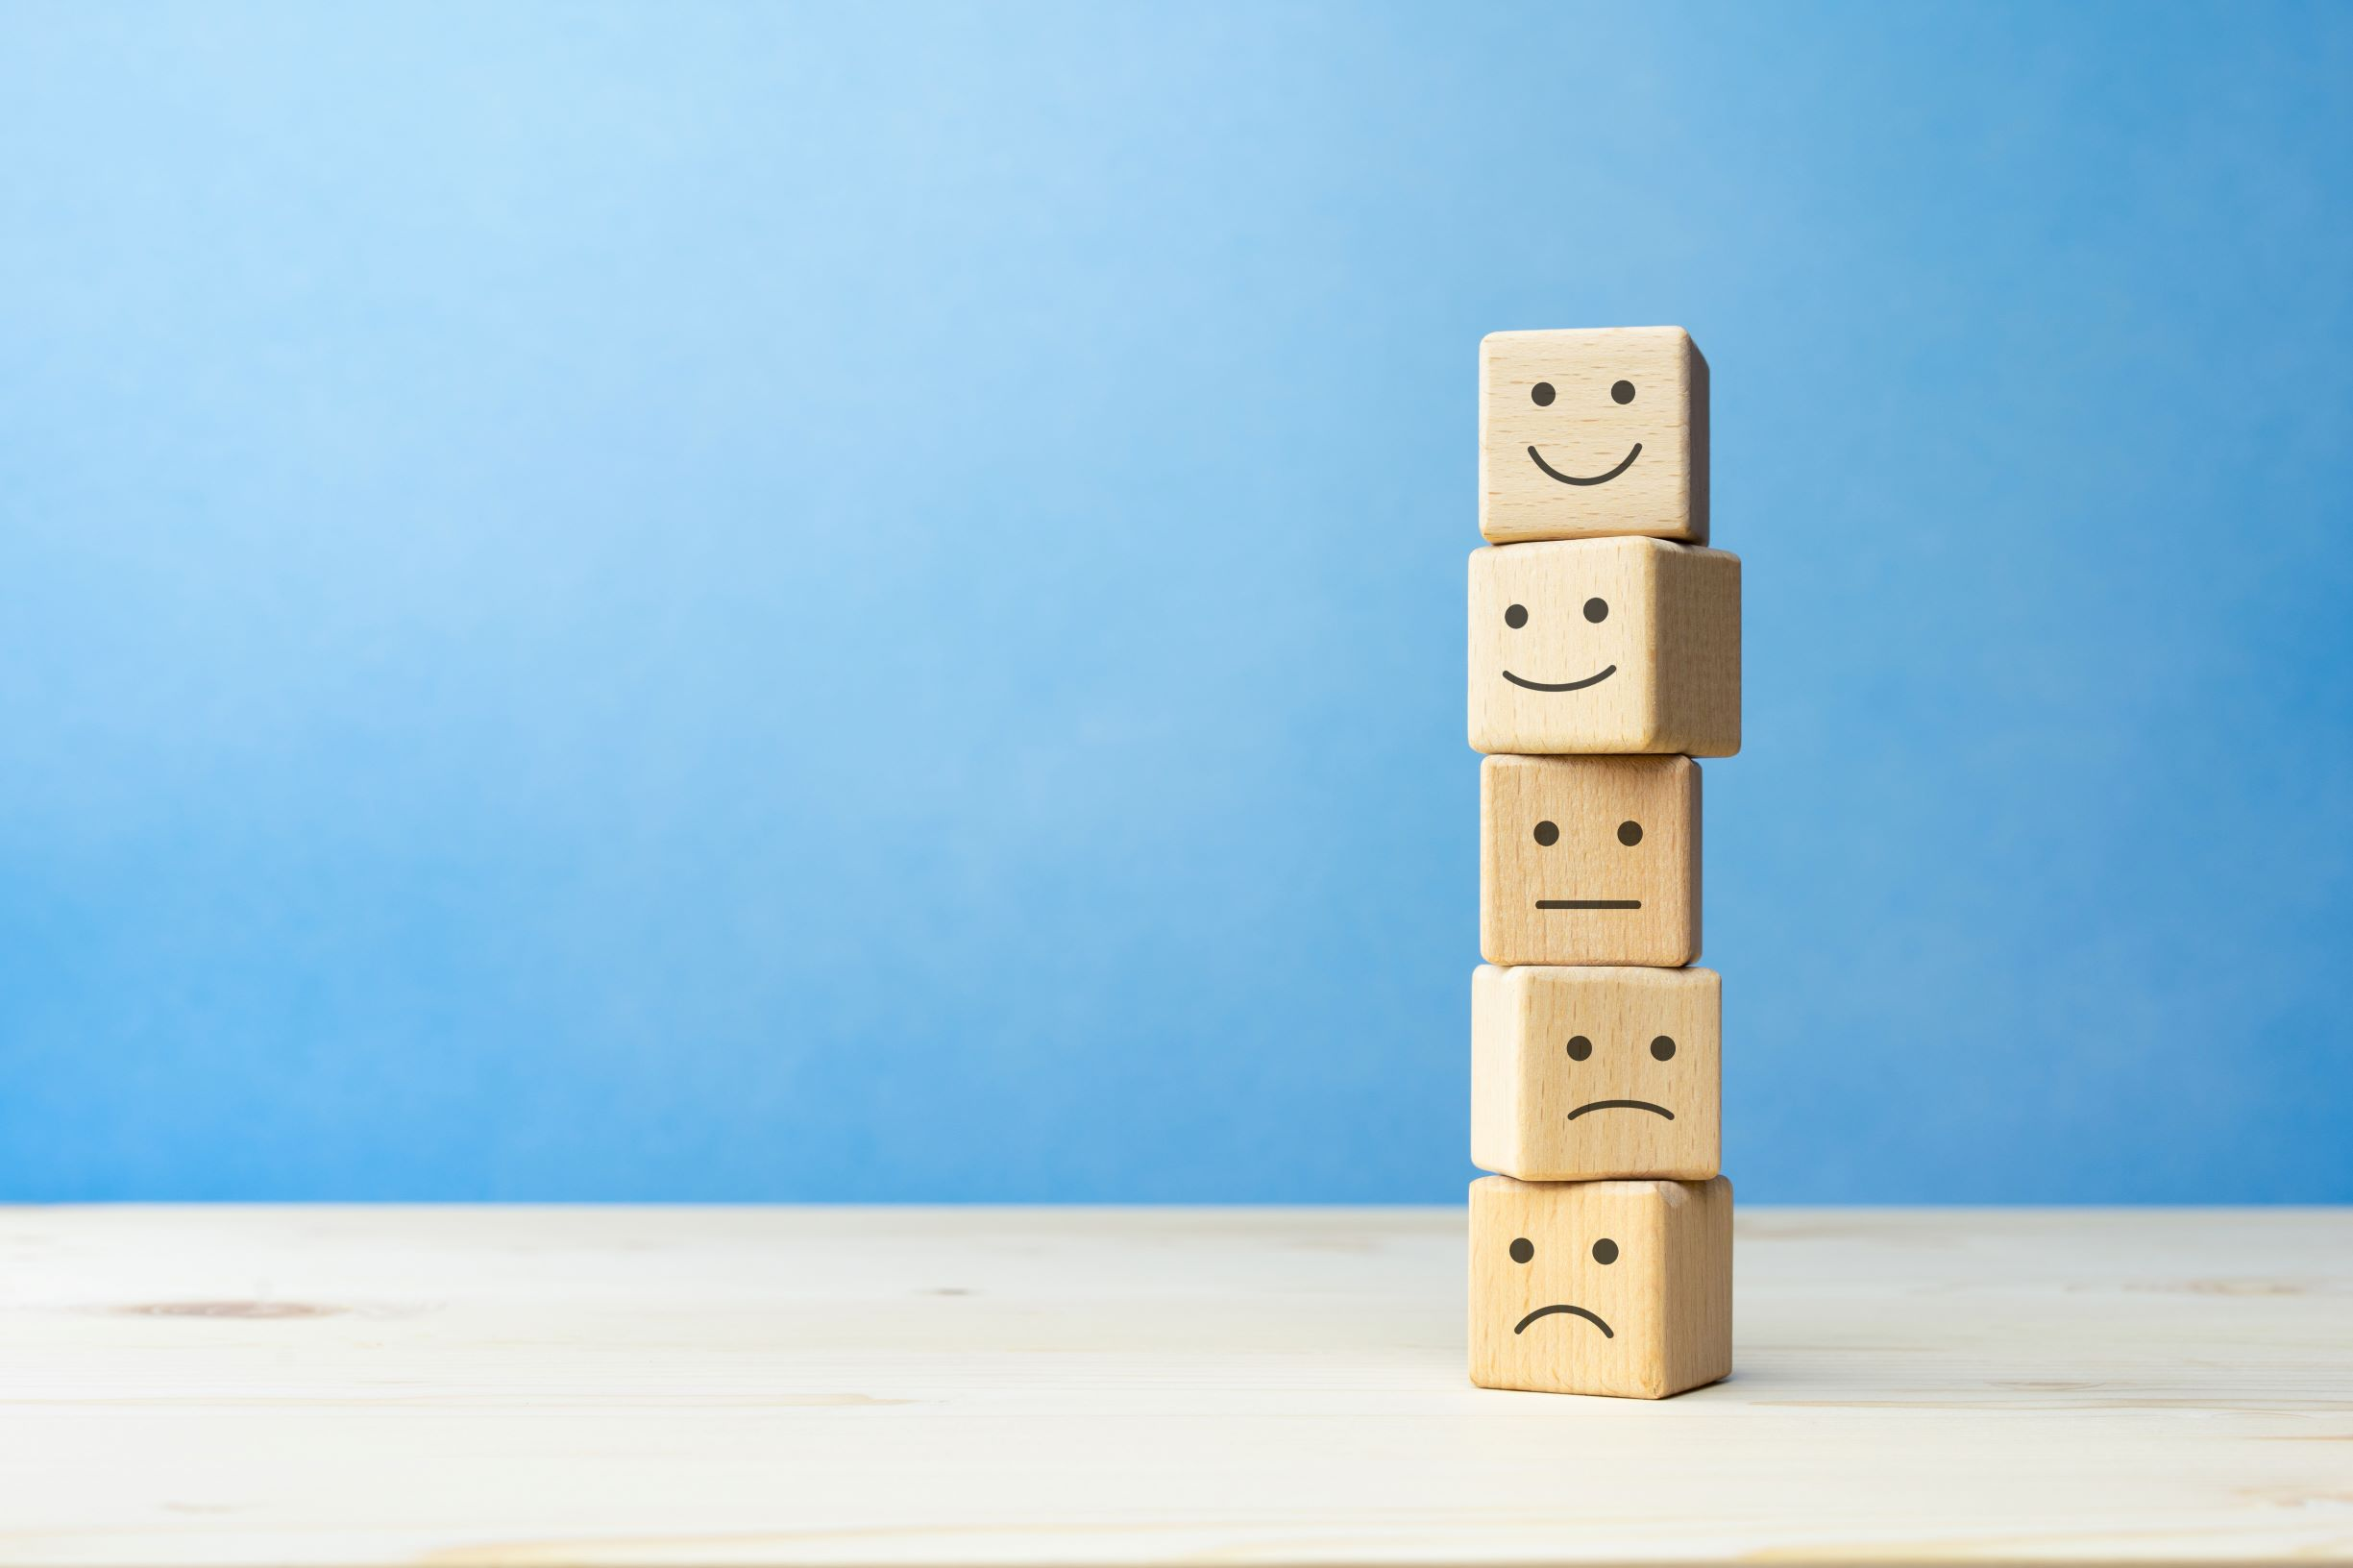 Wooden blocks stacked on a table, each has a different smiling face (happy to unhappy).